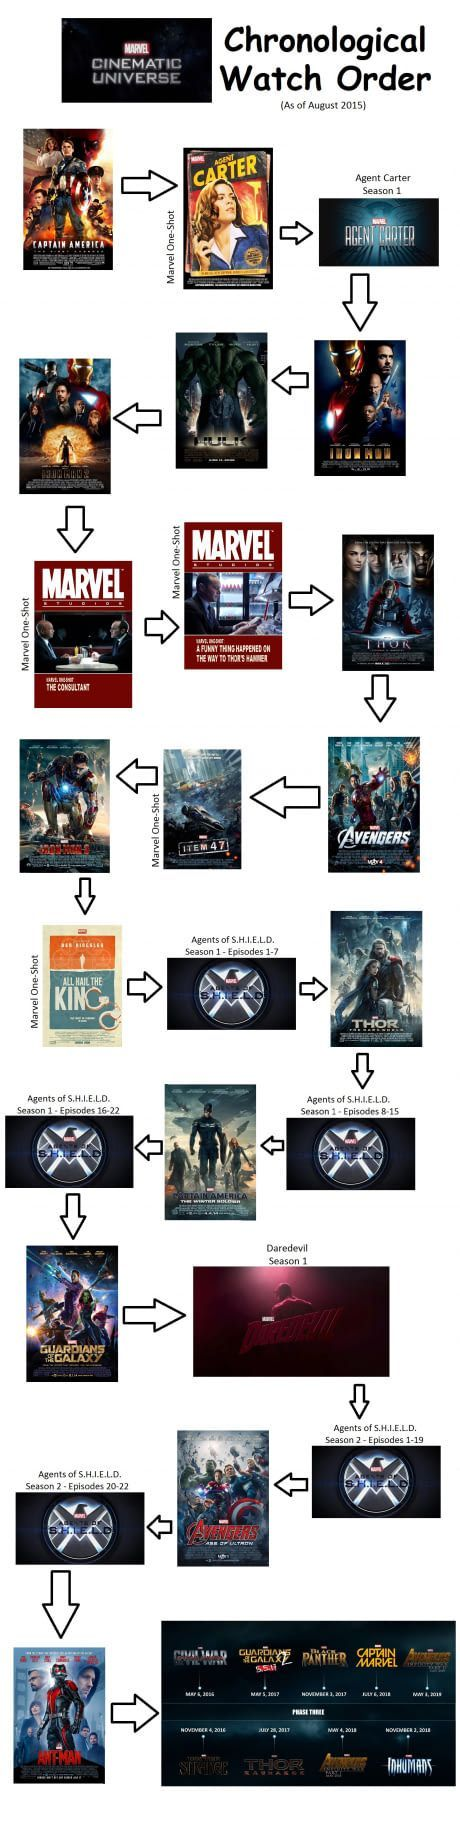 Mcu Watch Order Marvel Films Marvel Avengers